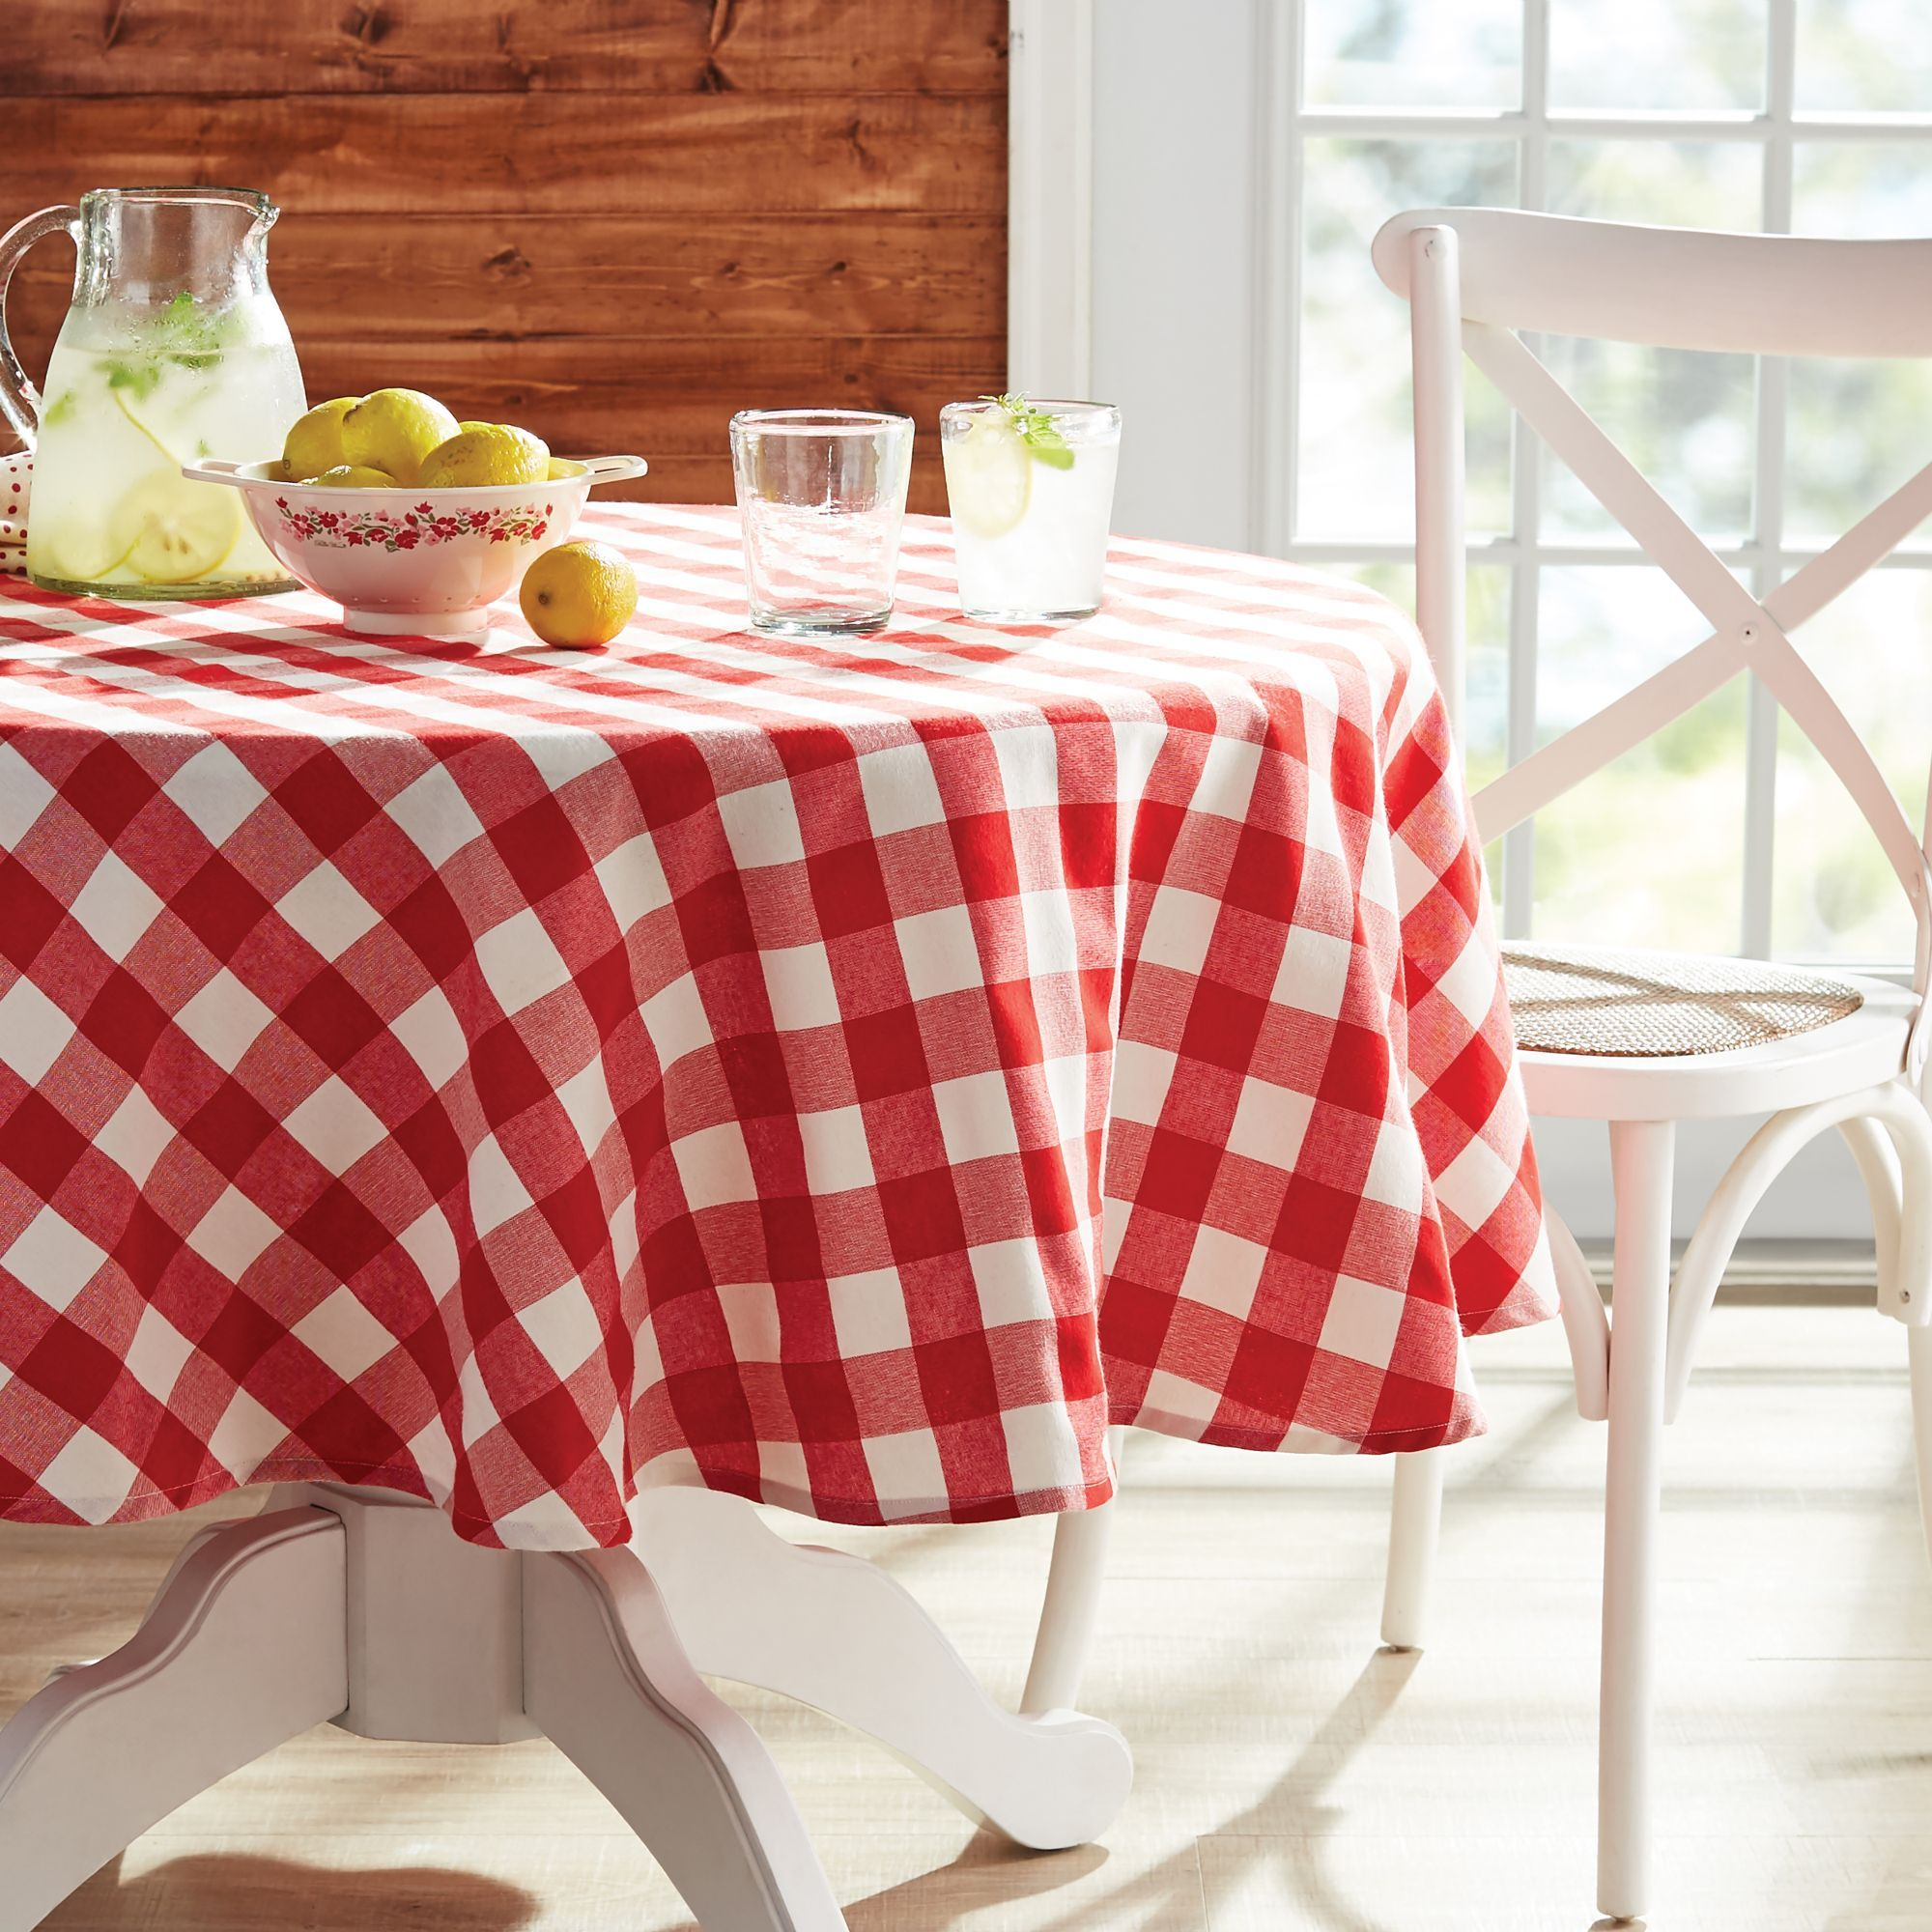 The Pioneer Woman Charming Check Round Tablecloth 70 Walmart Com In 2020 Pioneer Woman Kitchen Classic Tablecloths Pioneer Woman